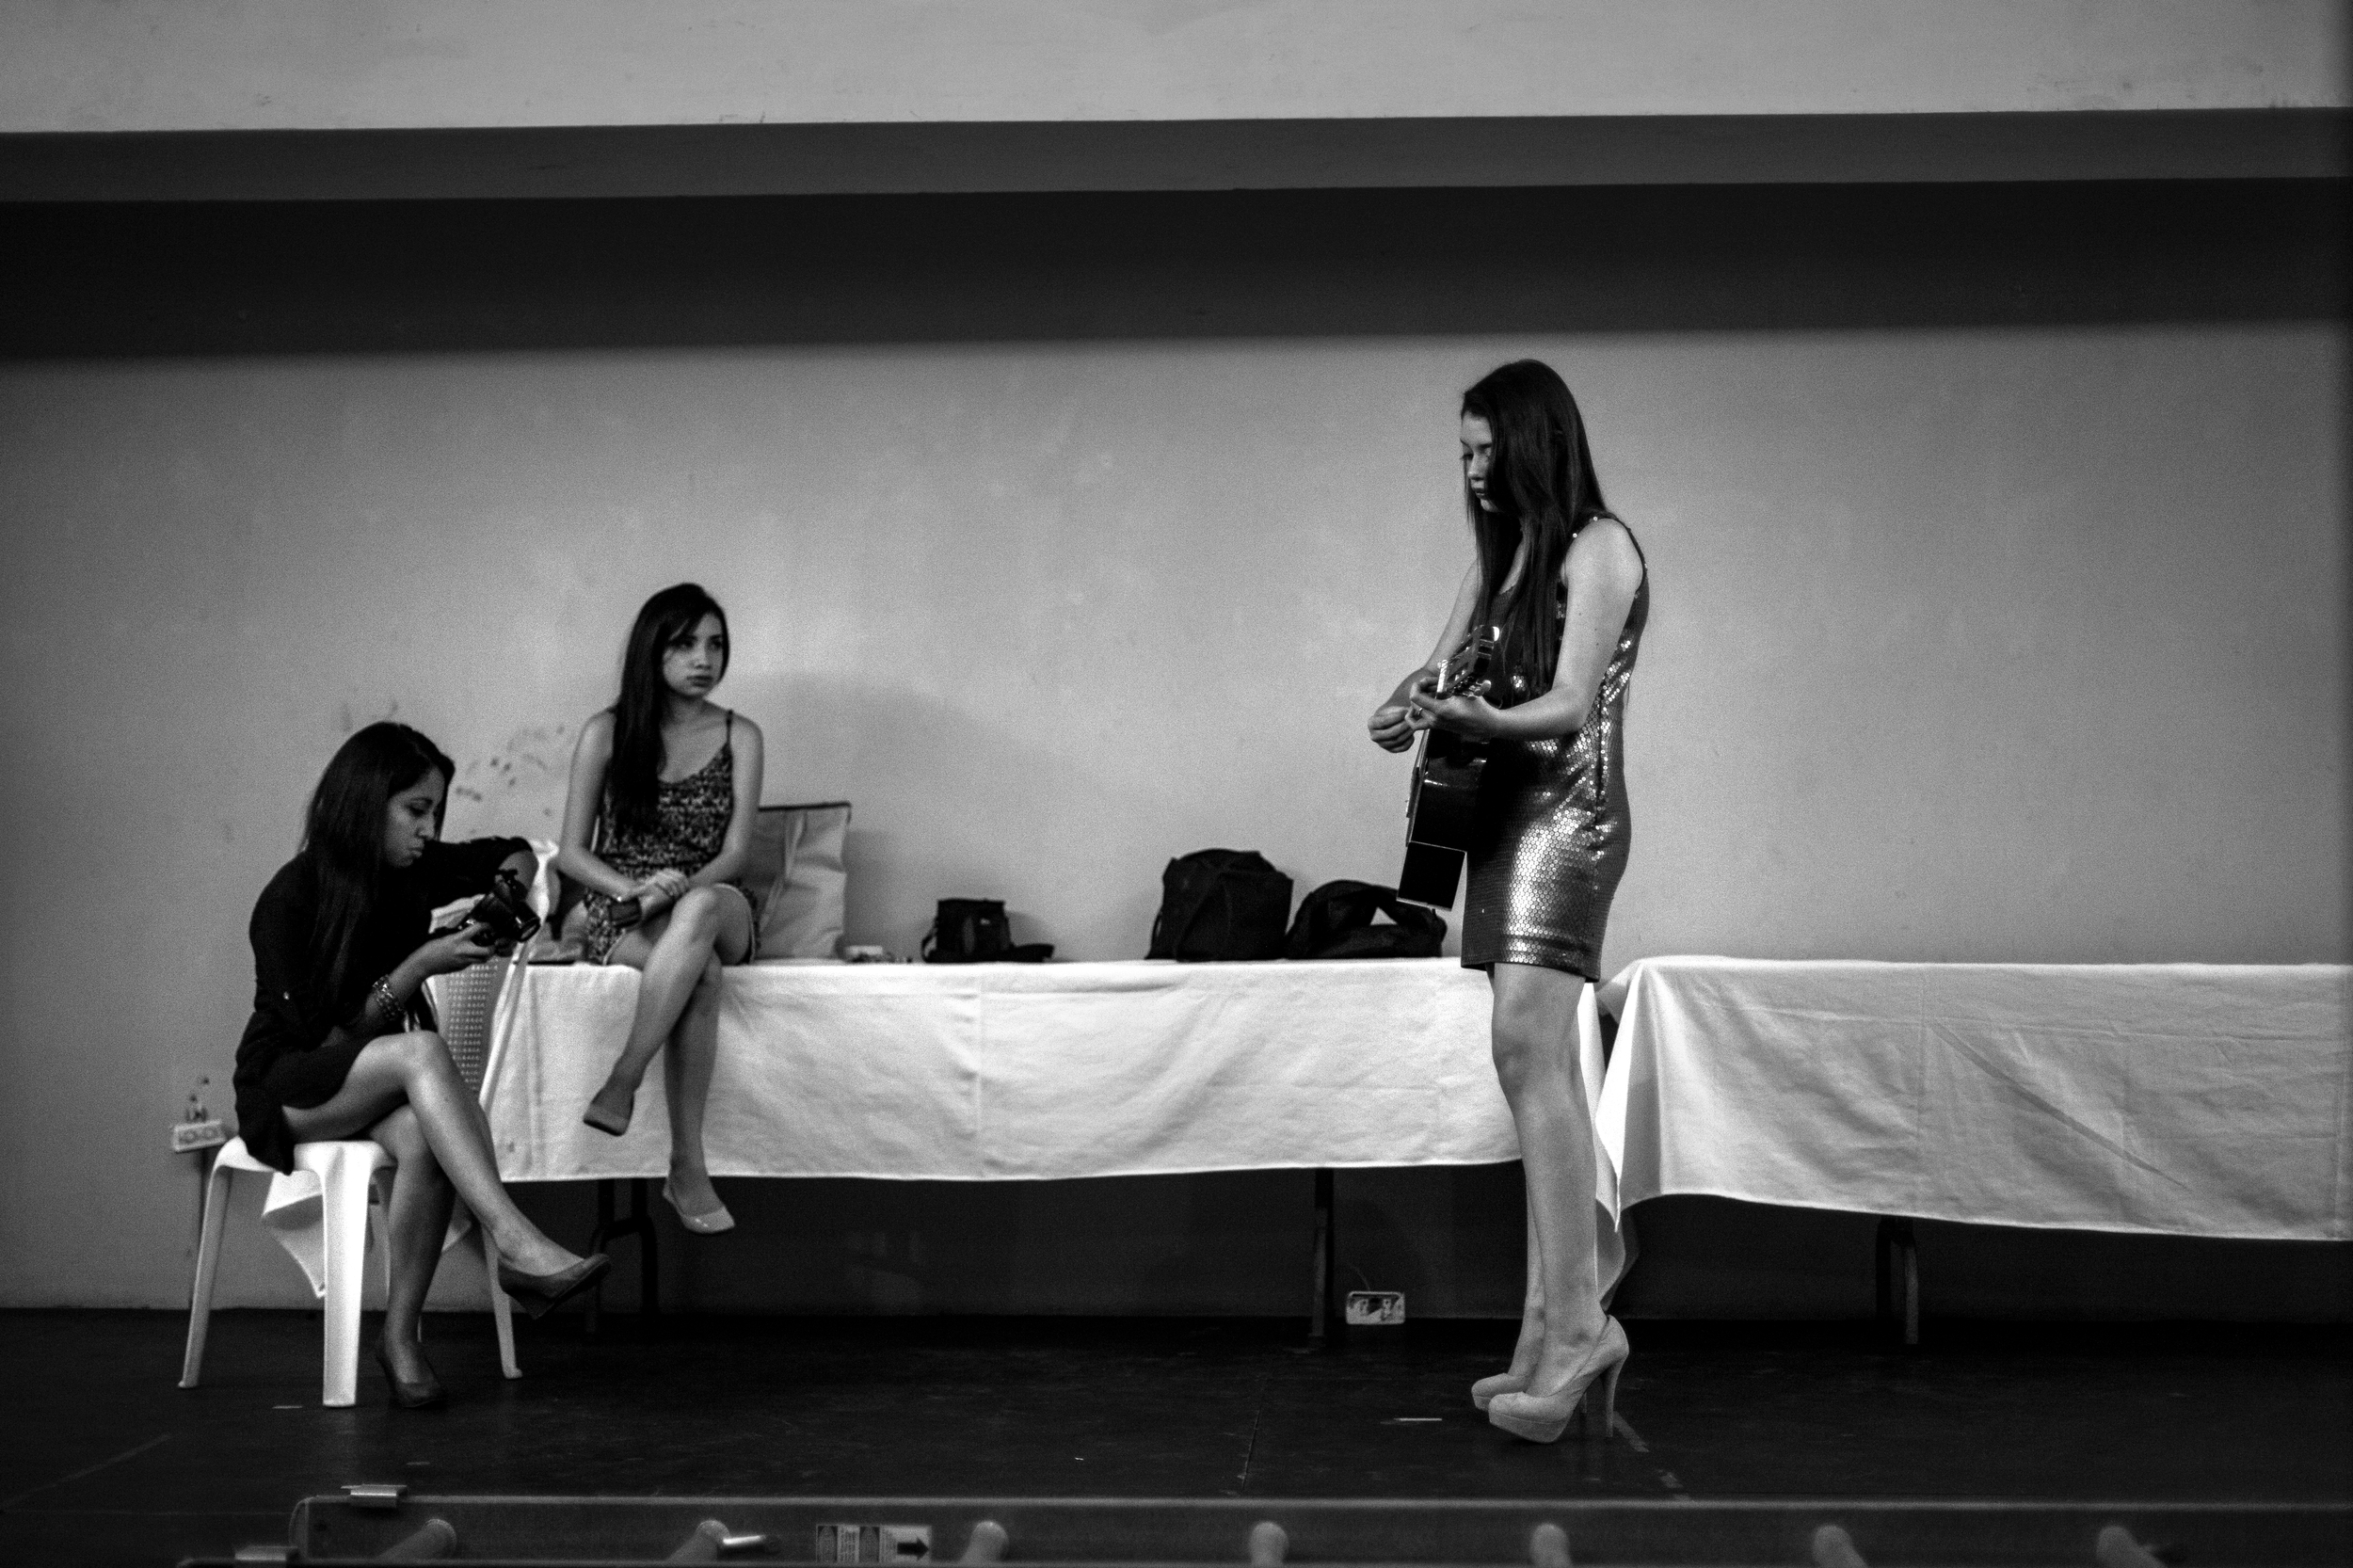 Rehearsing backstage for the 2014 Miss Antigua beauty pageant. Antigua, Guatemala.